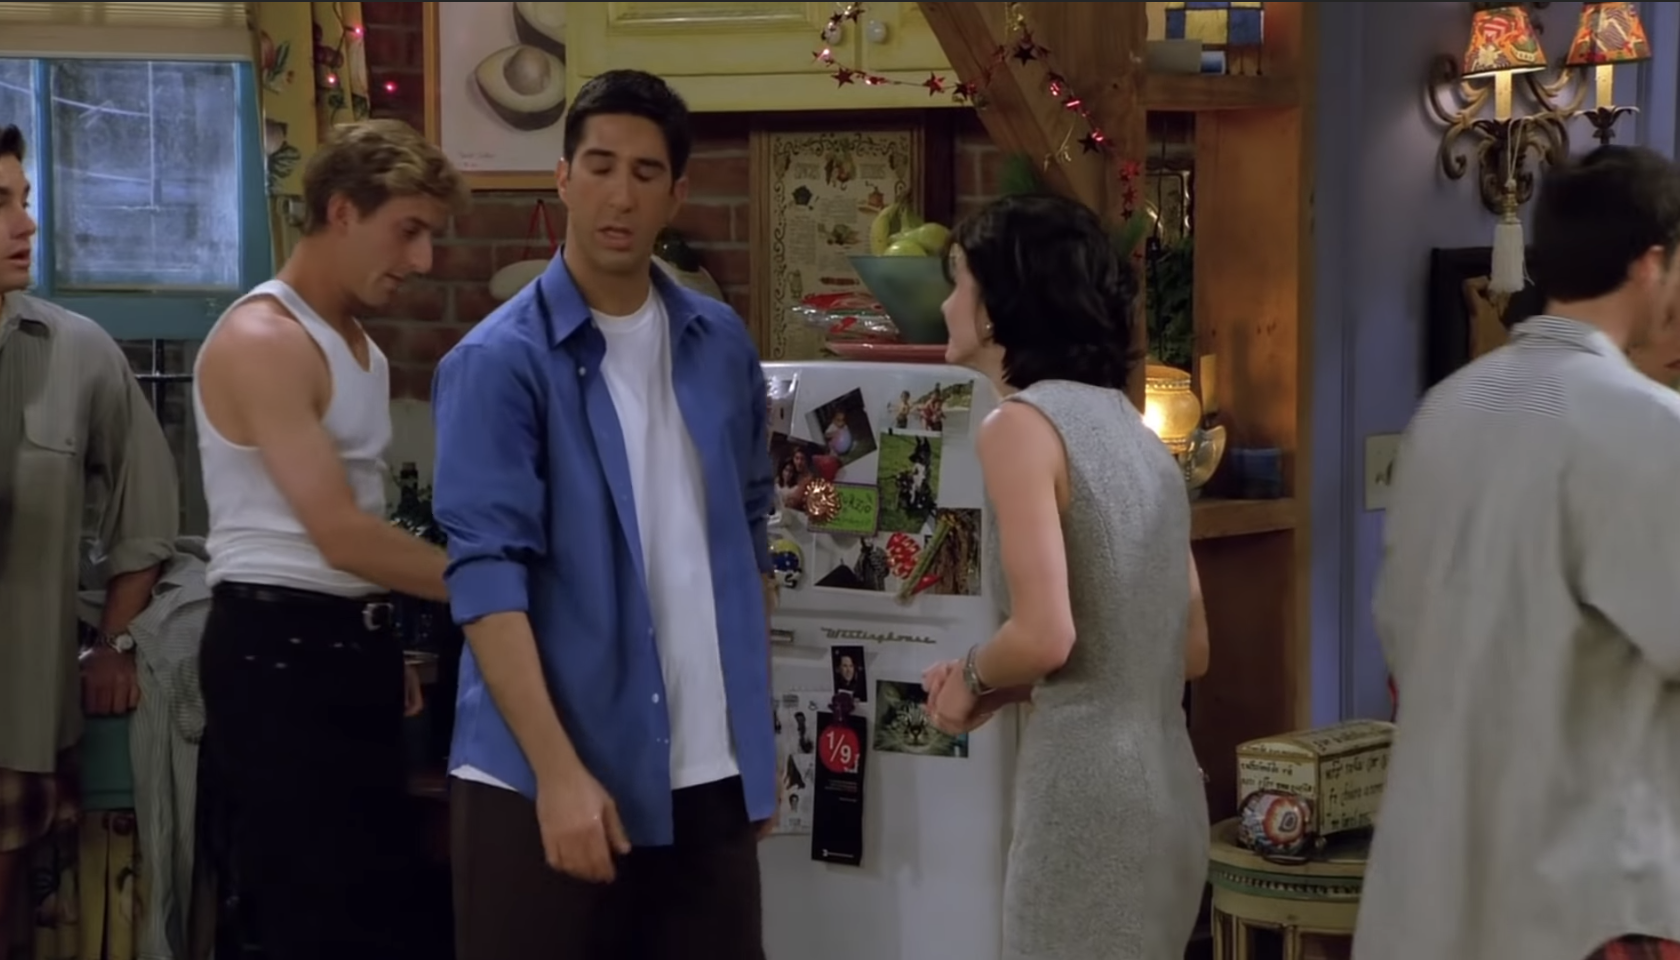 Ross and Monica by the fridge